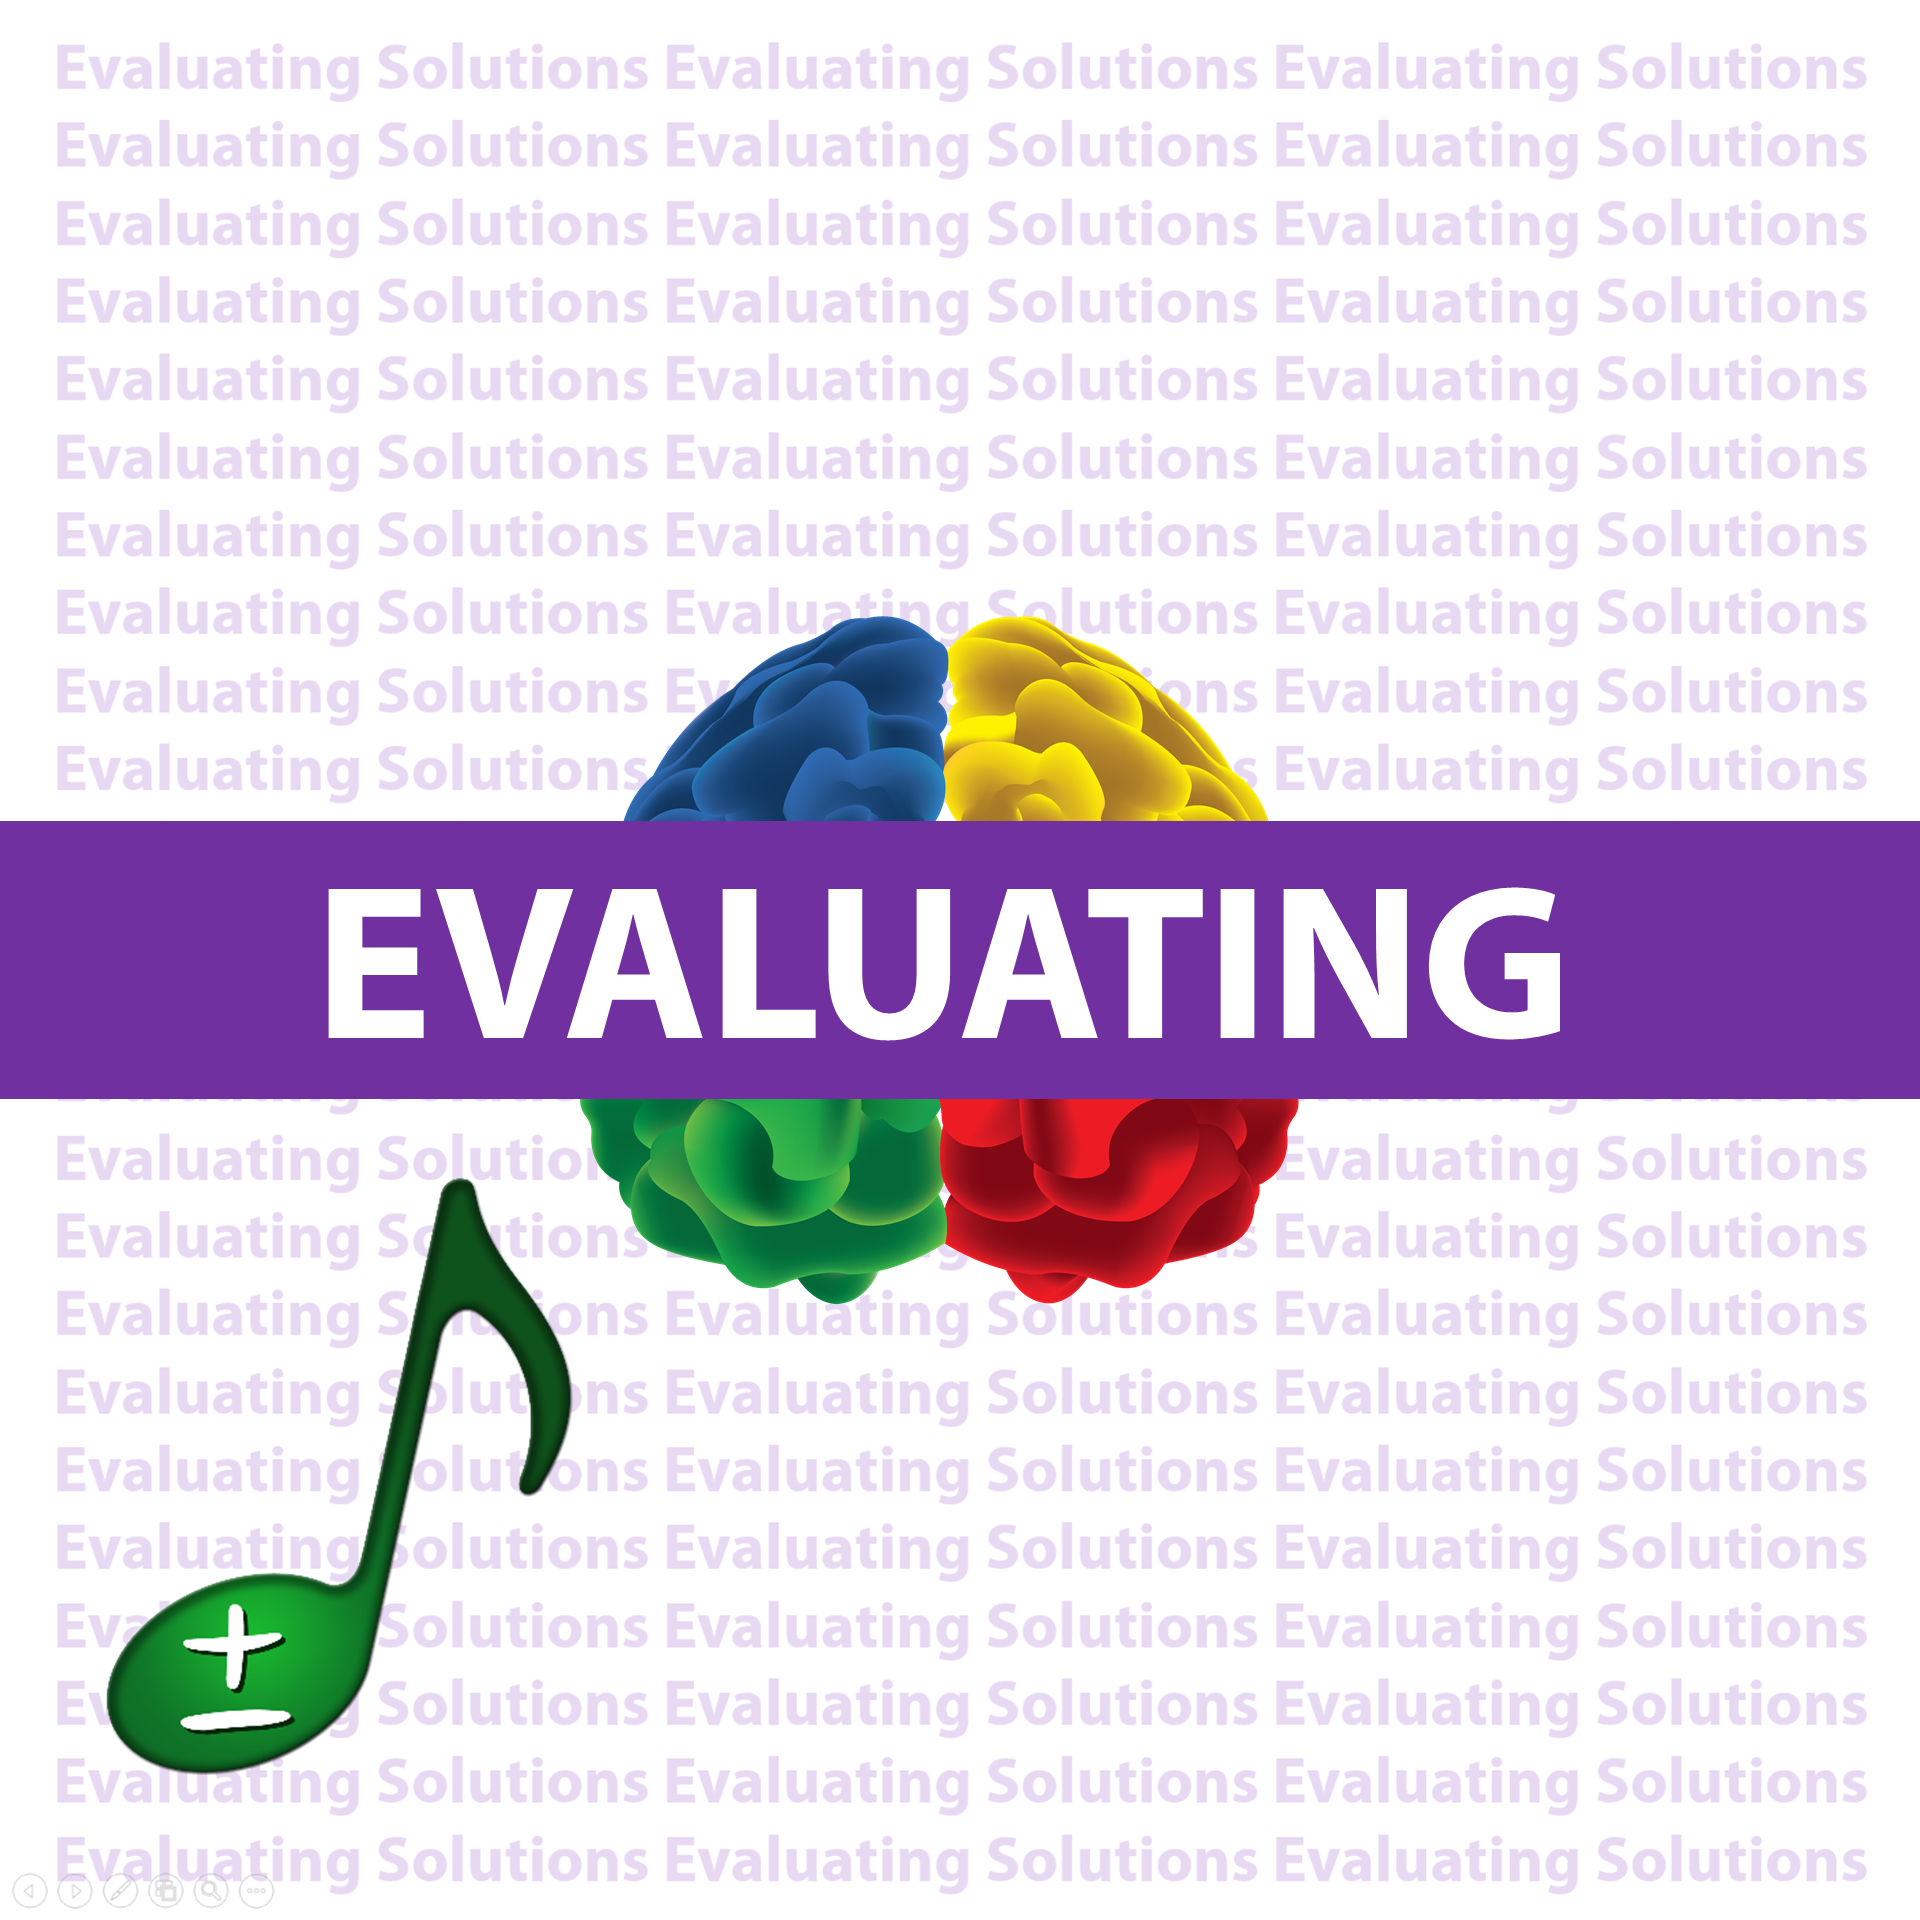 Evaluating Solutions iMusic KnowBrainer